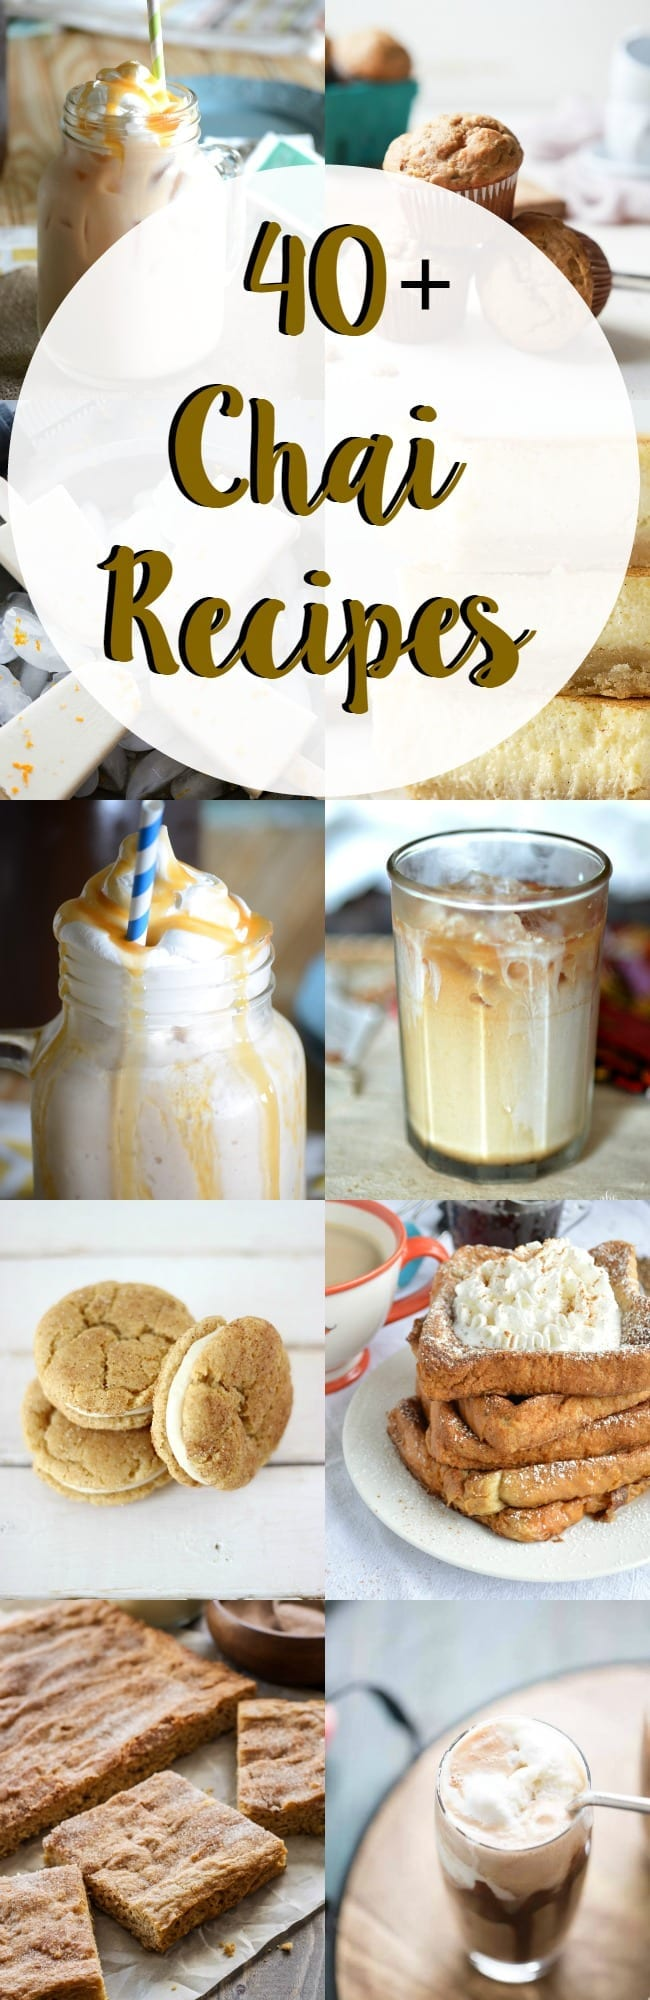 40 plus chai recipes to try! Drinks, desserts, breakfasts, snacks! All here and all full of chai goodness!